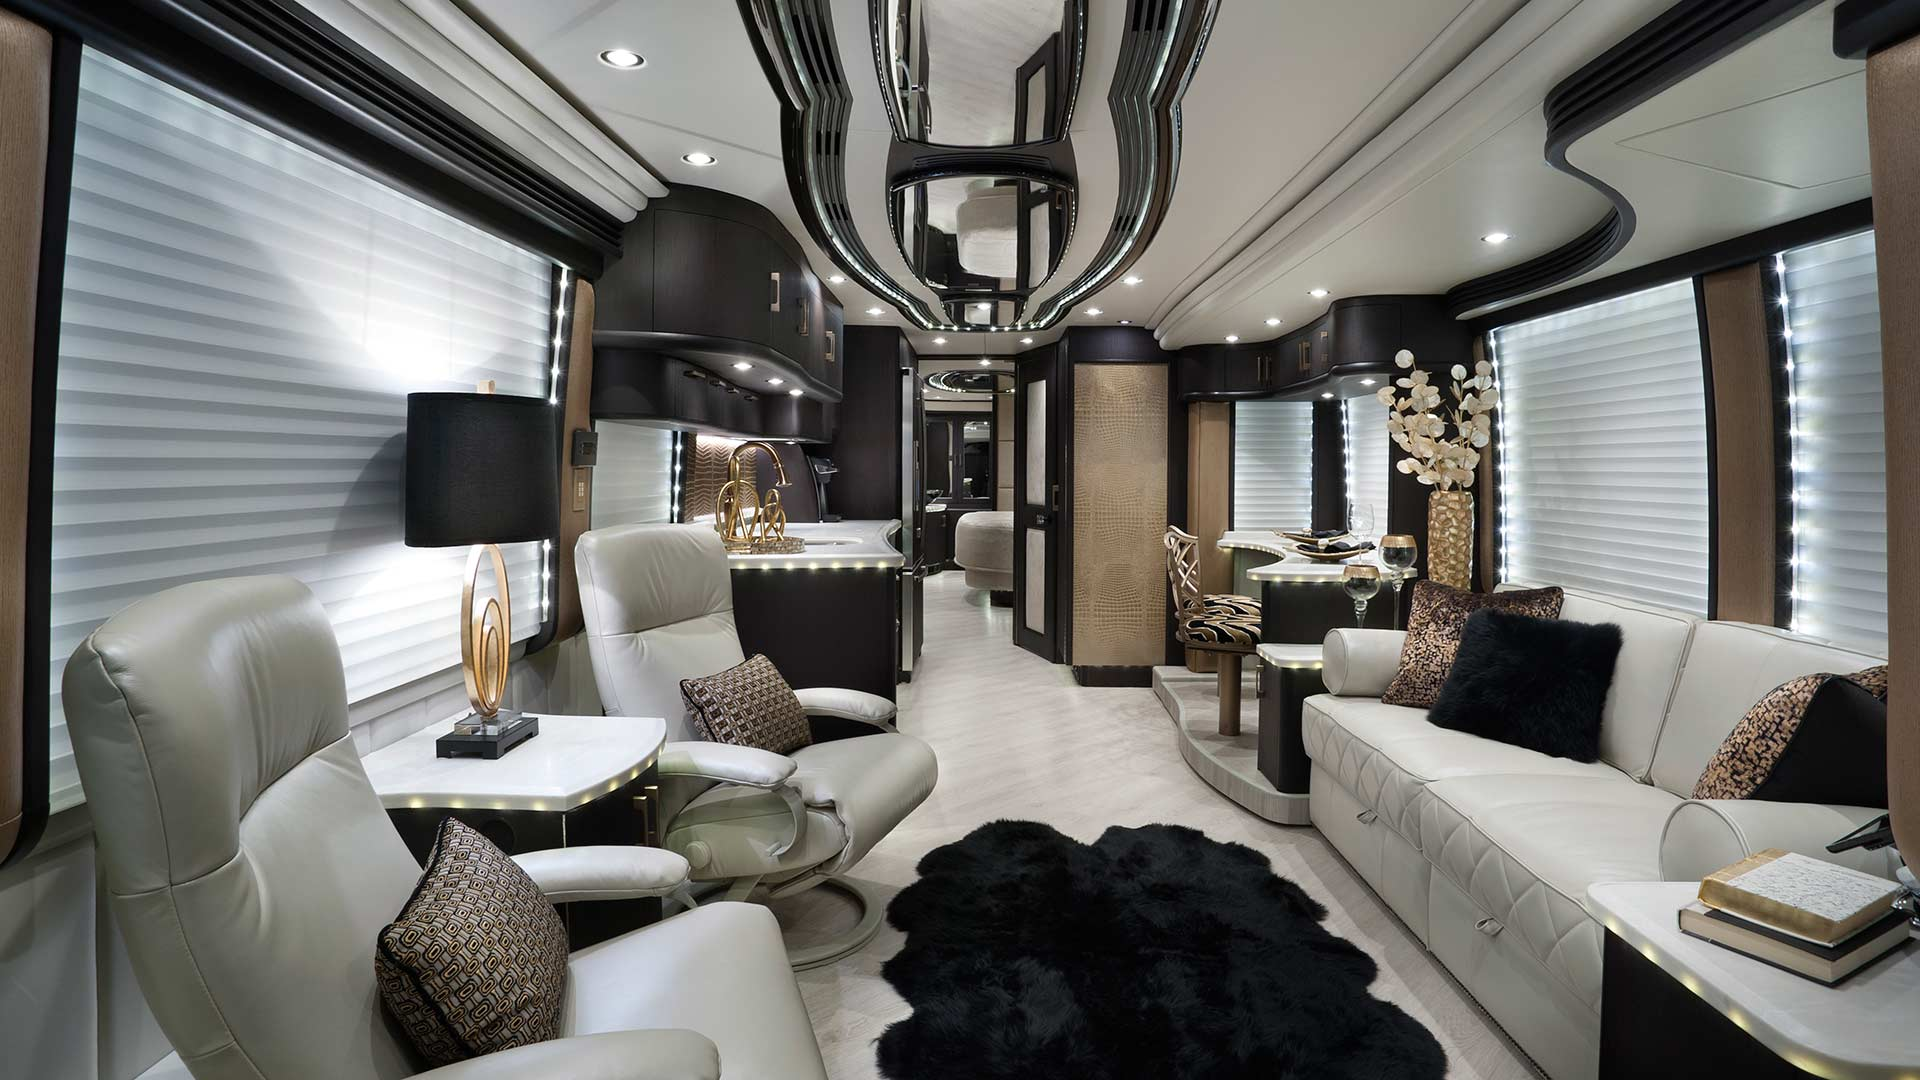 The Worlds Most Luxurious RV Interiors